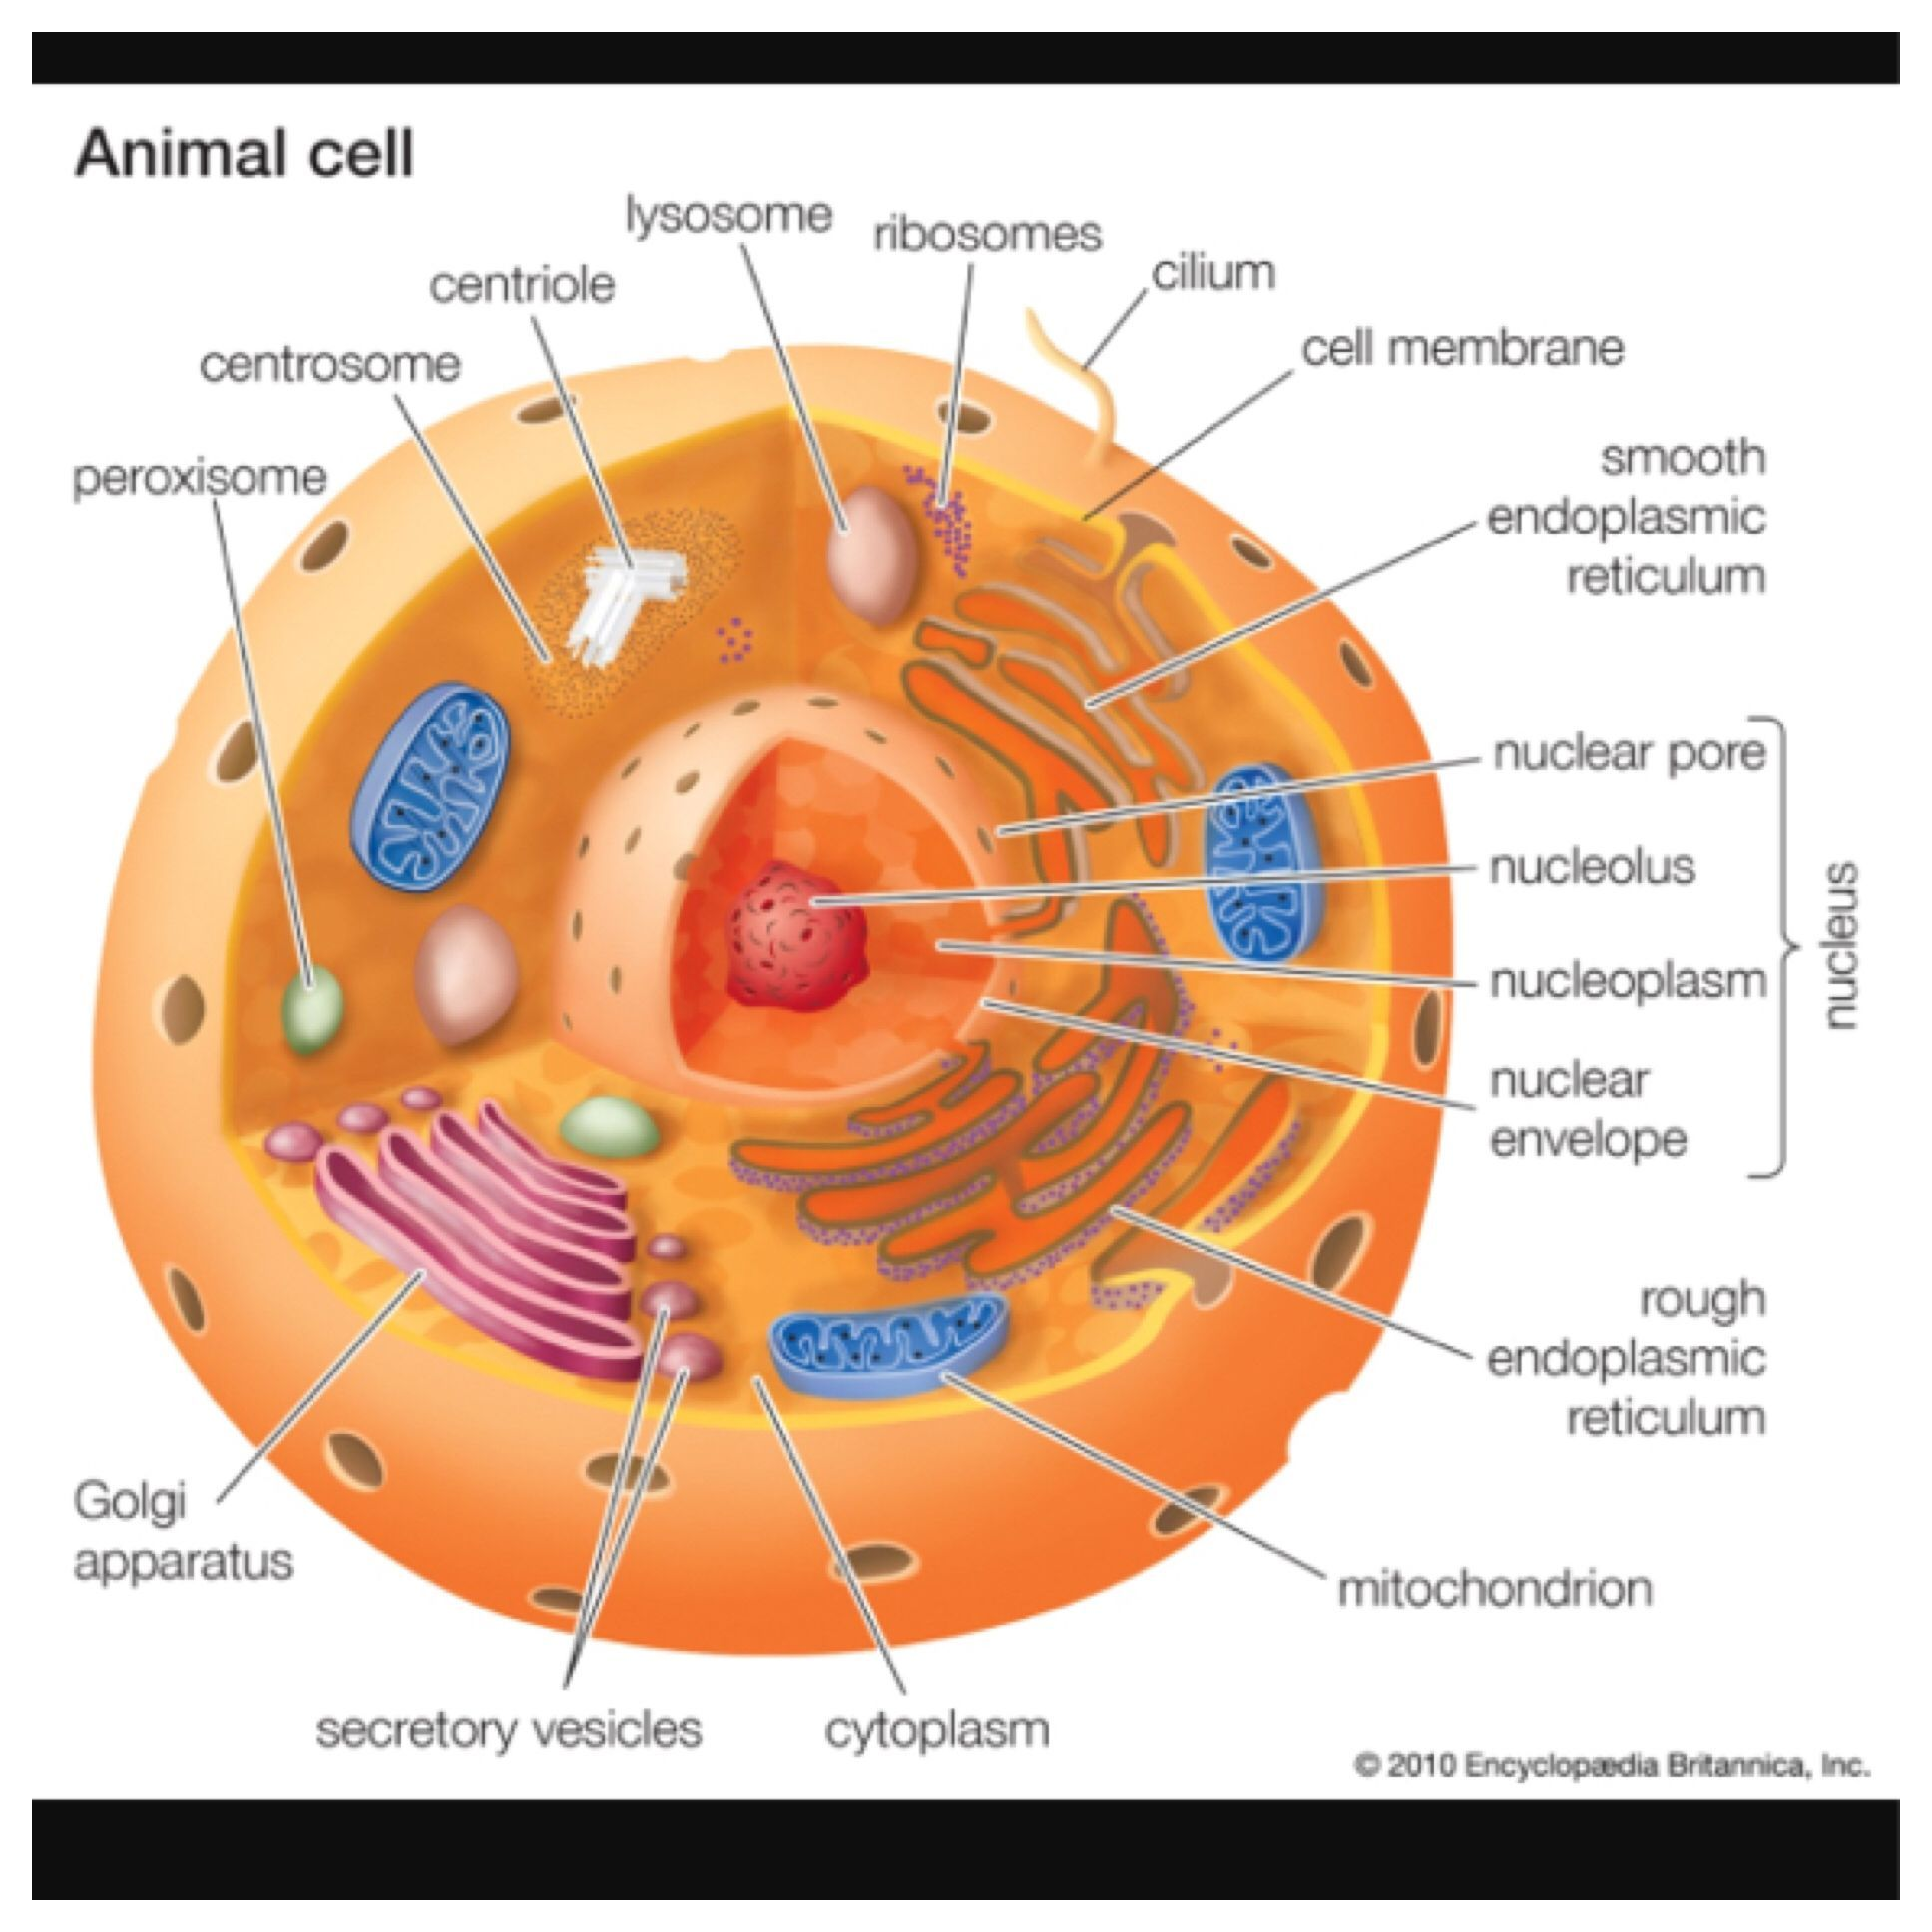 animal cell model ideas for your science project animal cell model cell model also animal cell diagram on easy animal cell diagram [ 1936 x 1936 Pixel ]